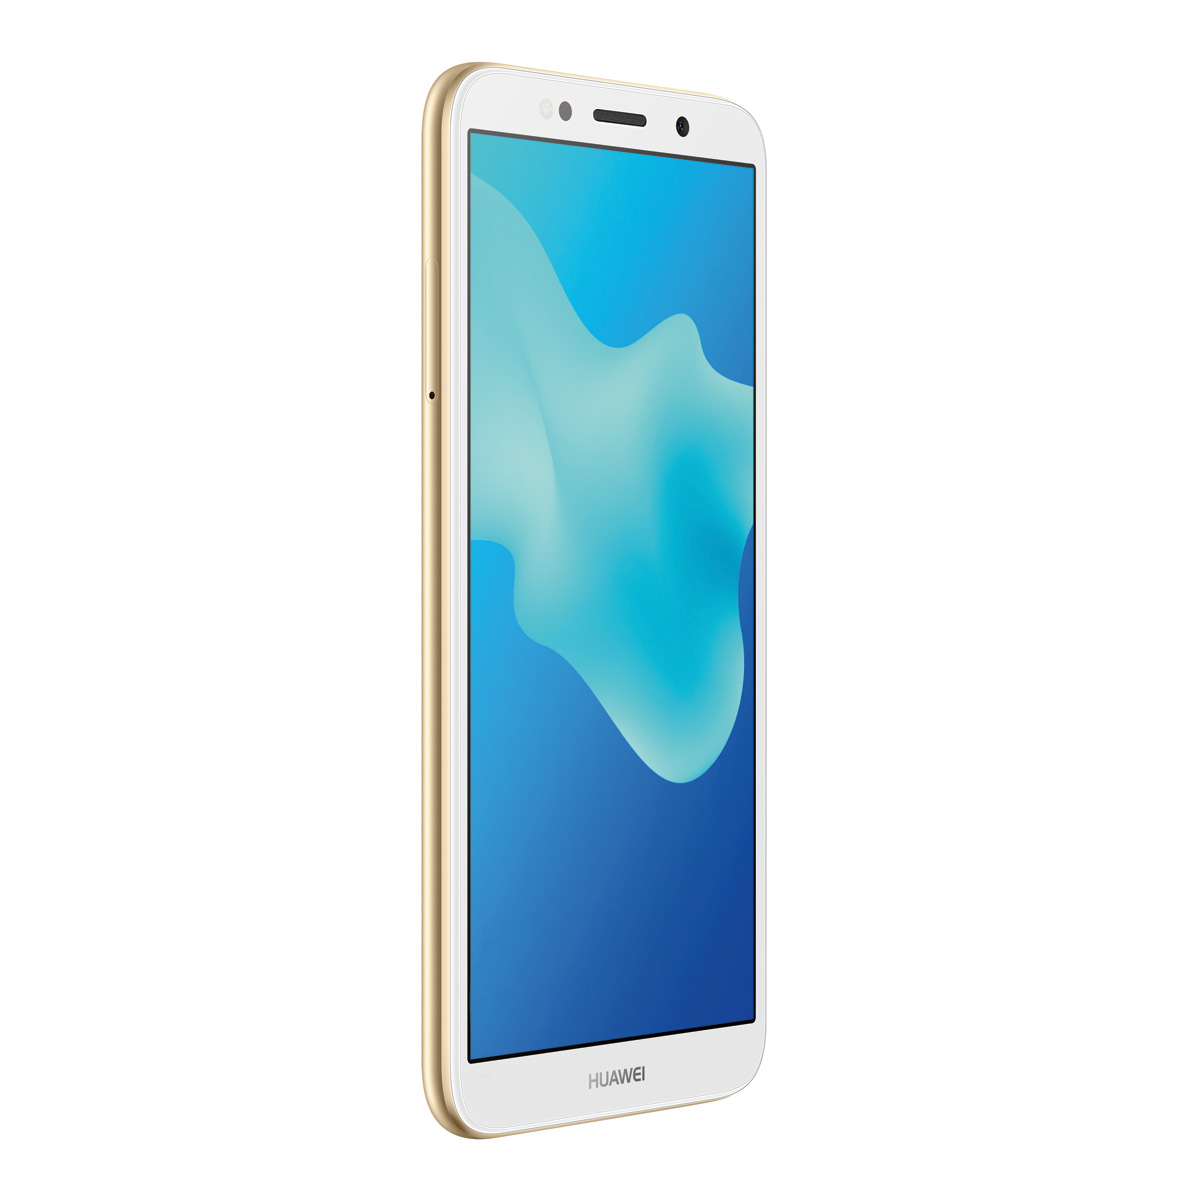 Buy Huawei Y5 2018 - (2GB / 16GB) (Gold) | Model HU-Y5-2018